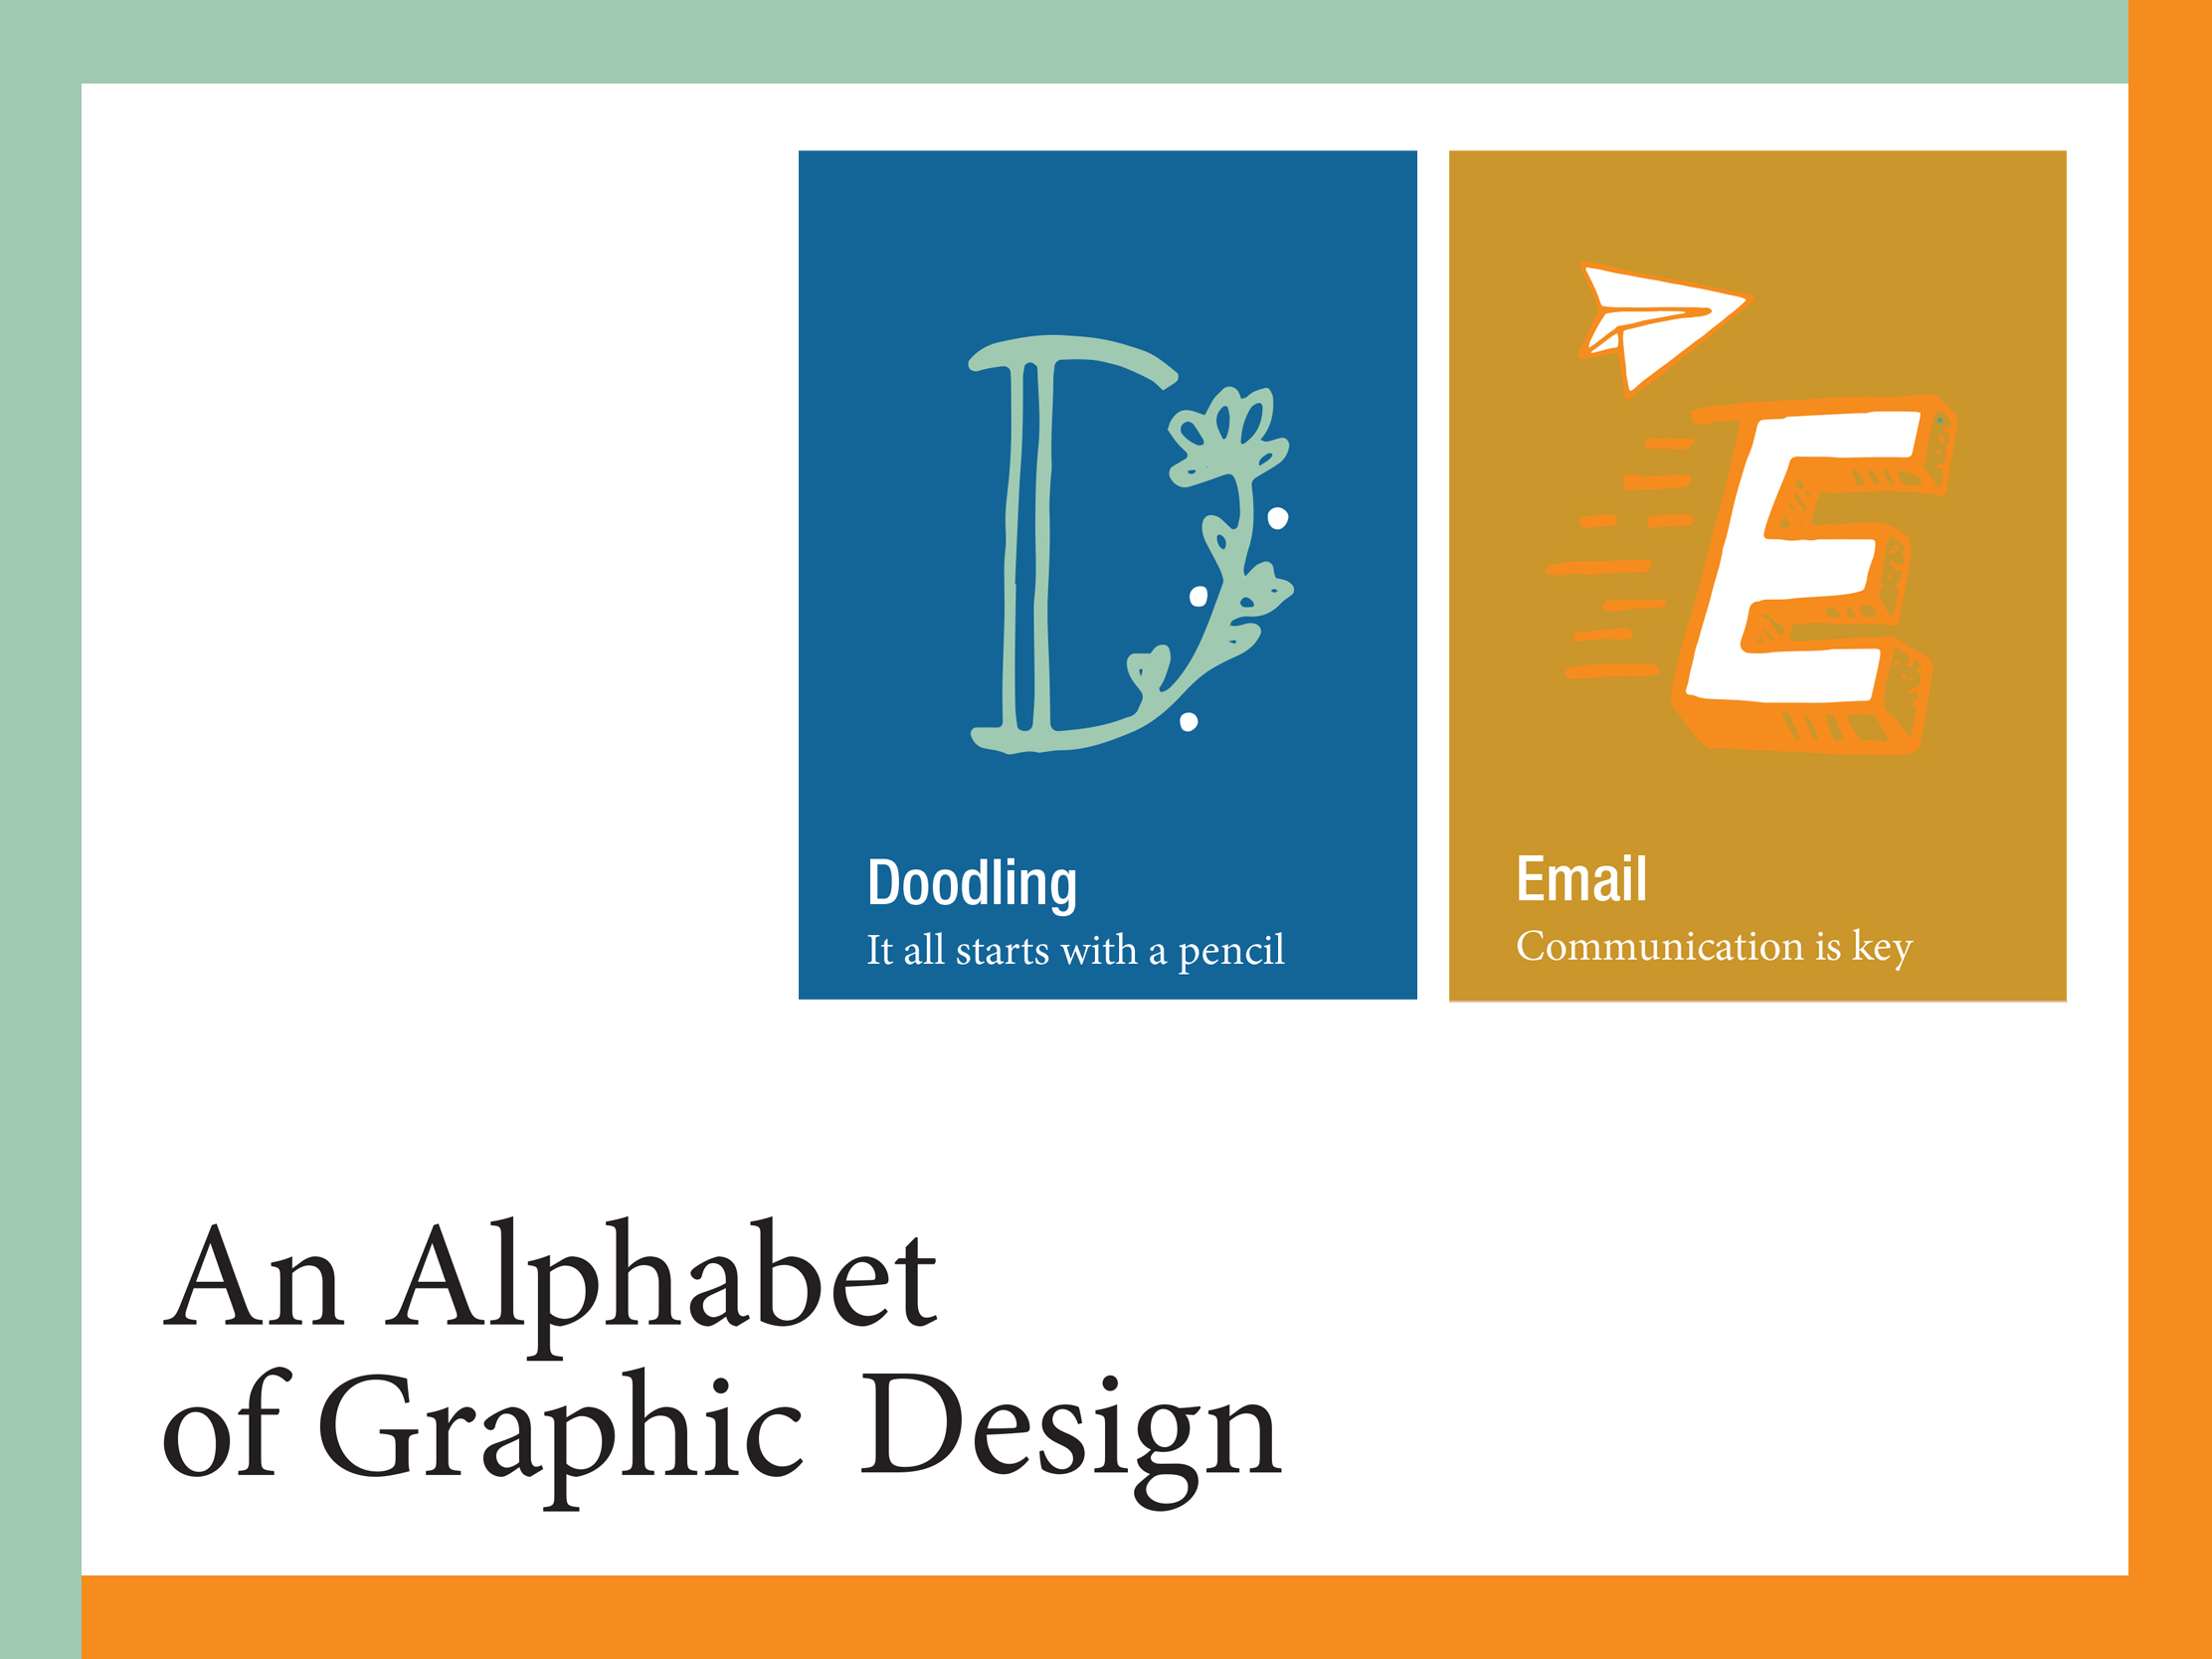 An Alphabet of Graphic Design, D and E Newsletter